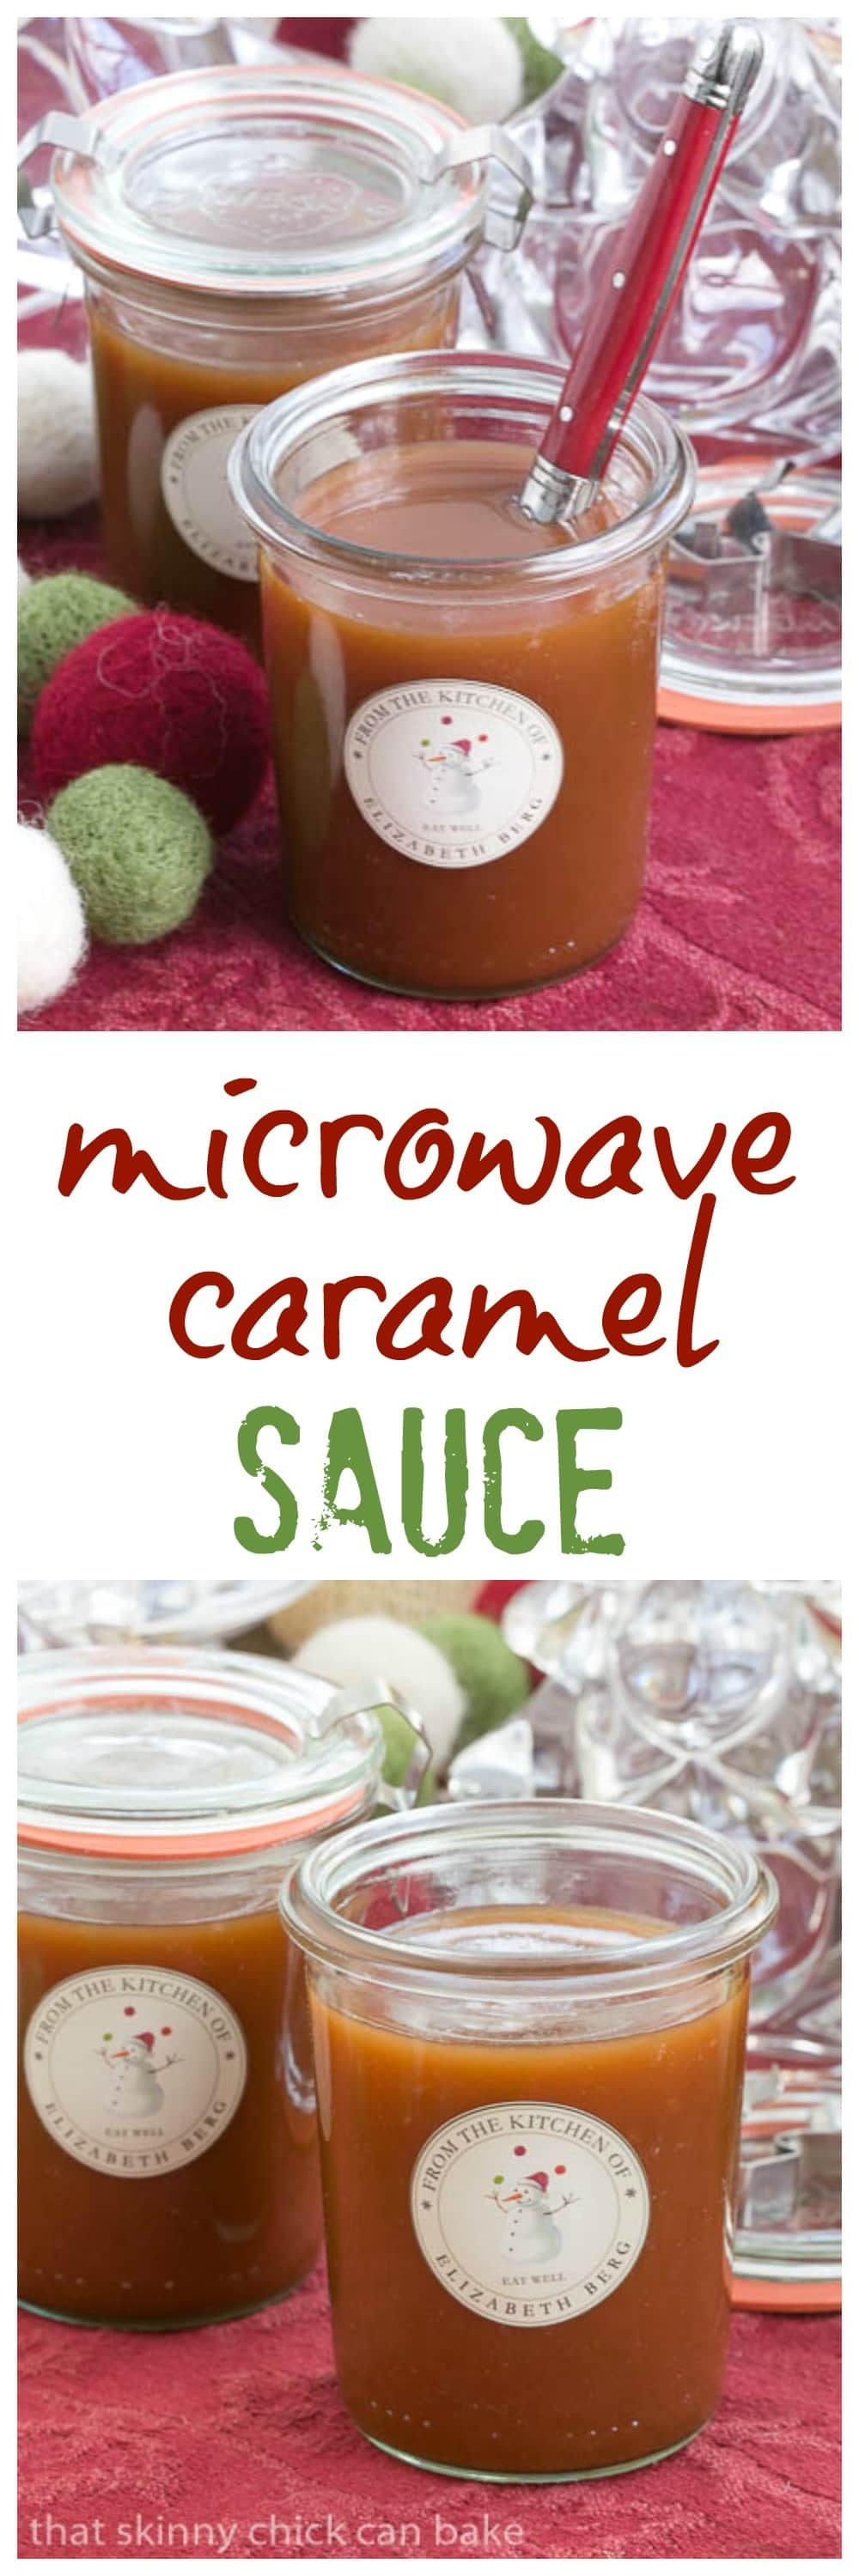 Microwave Caramel Sauce | A terrific hostess or holiday gift!